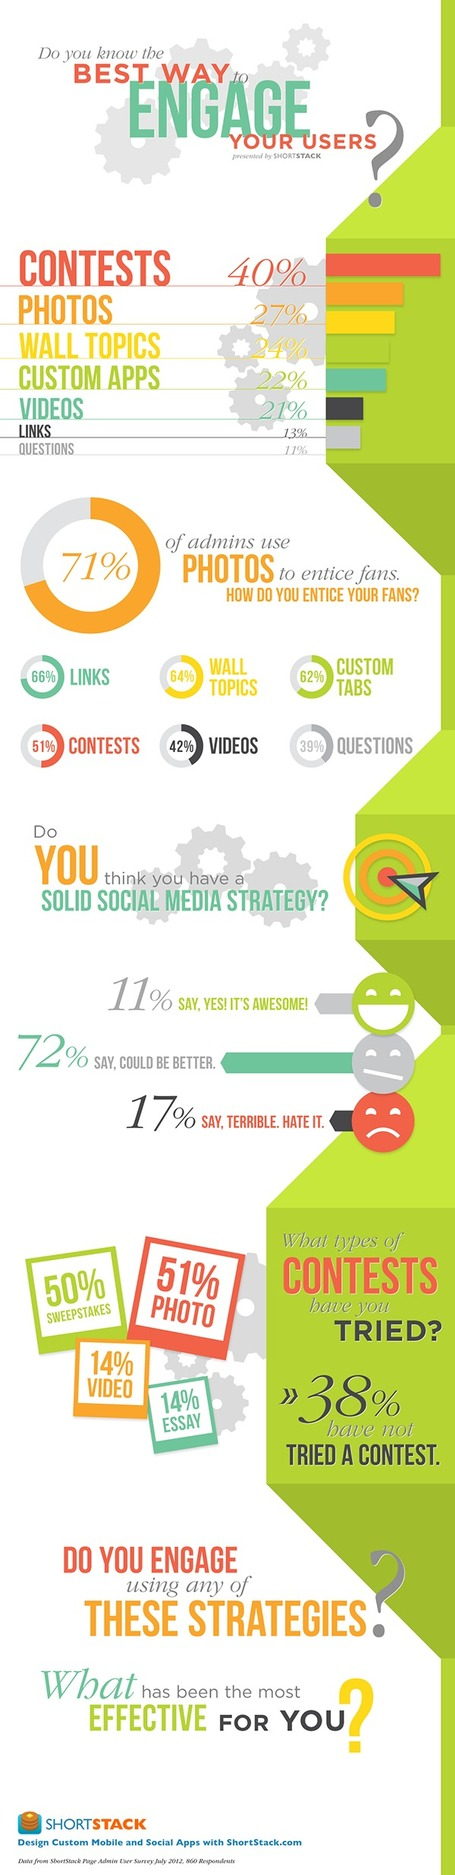 What Are The Best Ways To Engage Social Media Users? [INFOGRAPHIC] | Infographics and Social Media | Scoop.it